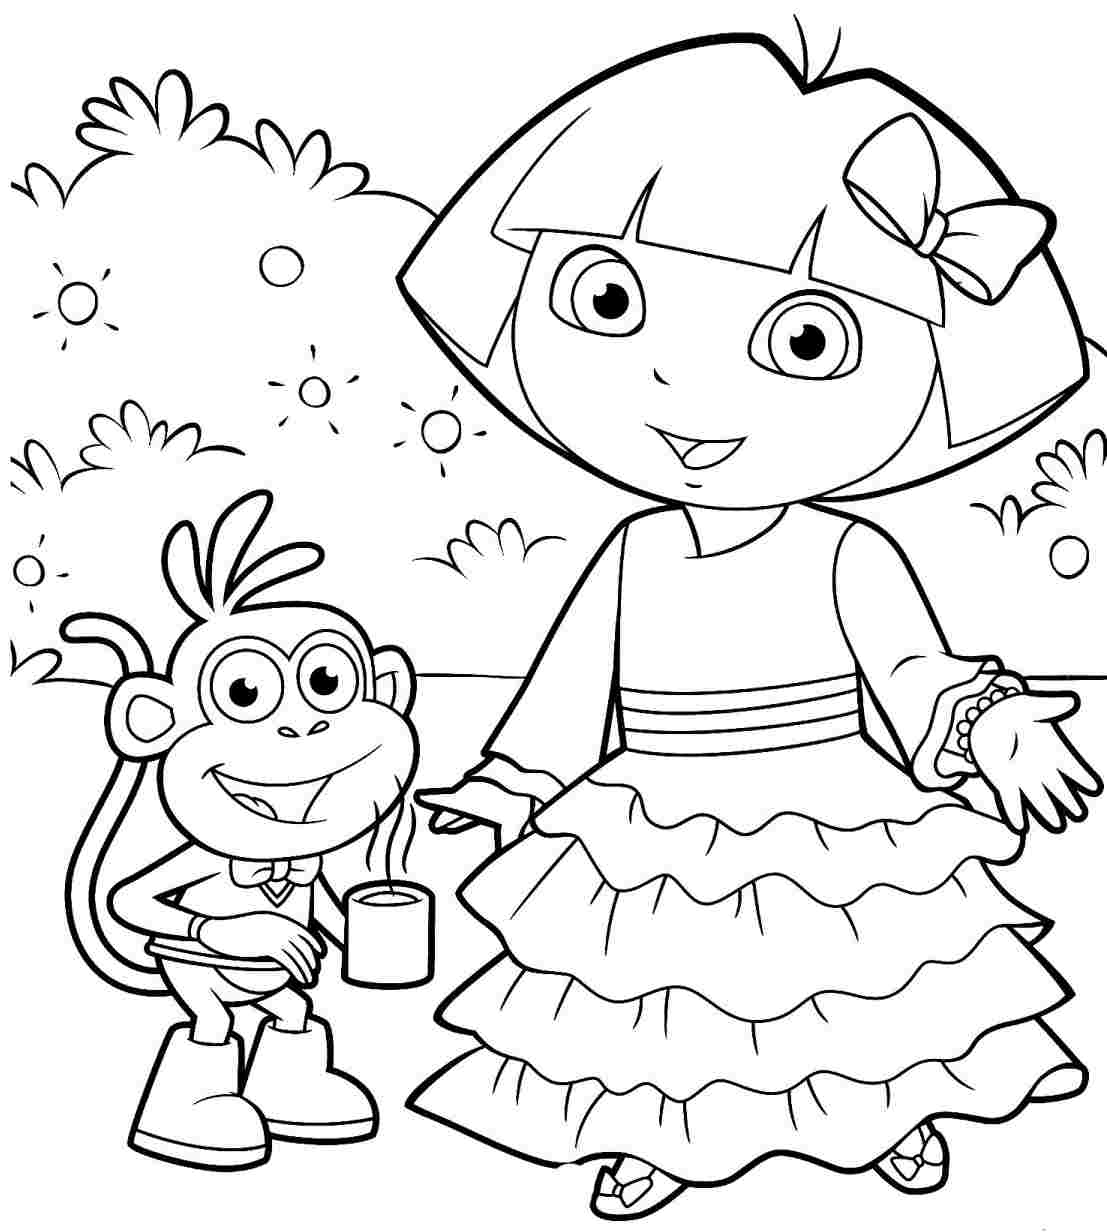 dora colouring sheet print download dora coloring pages to learn new things colouring dora sheet